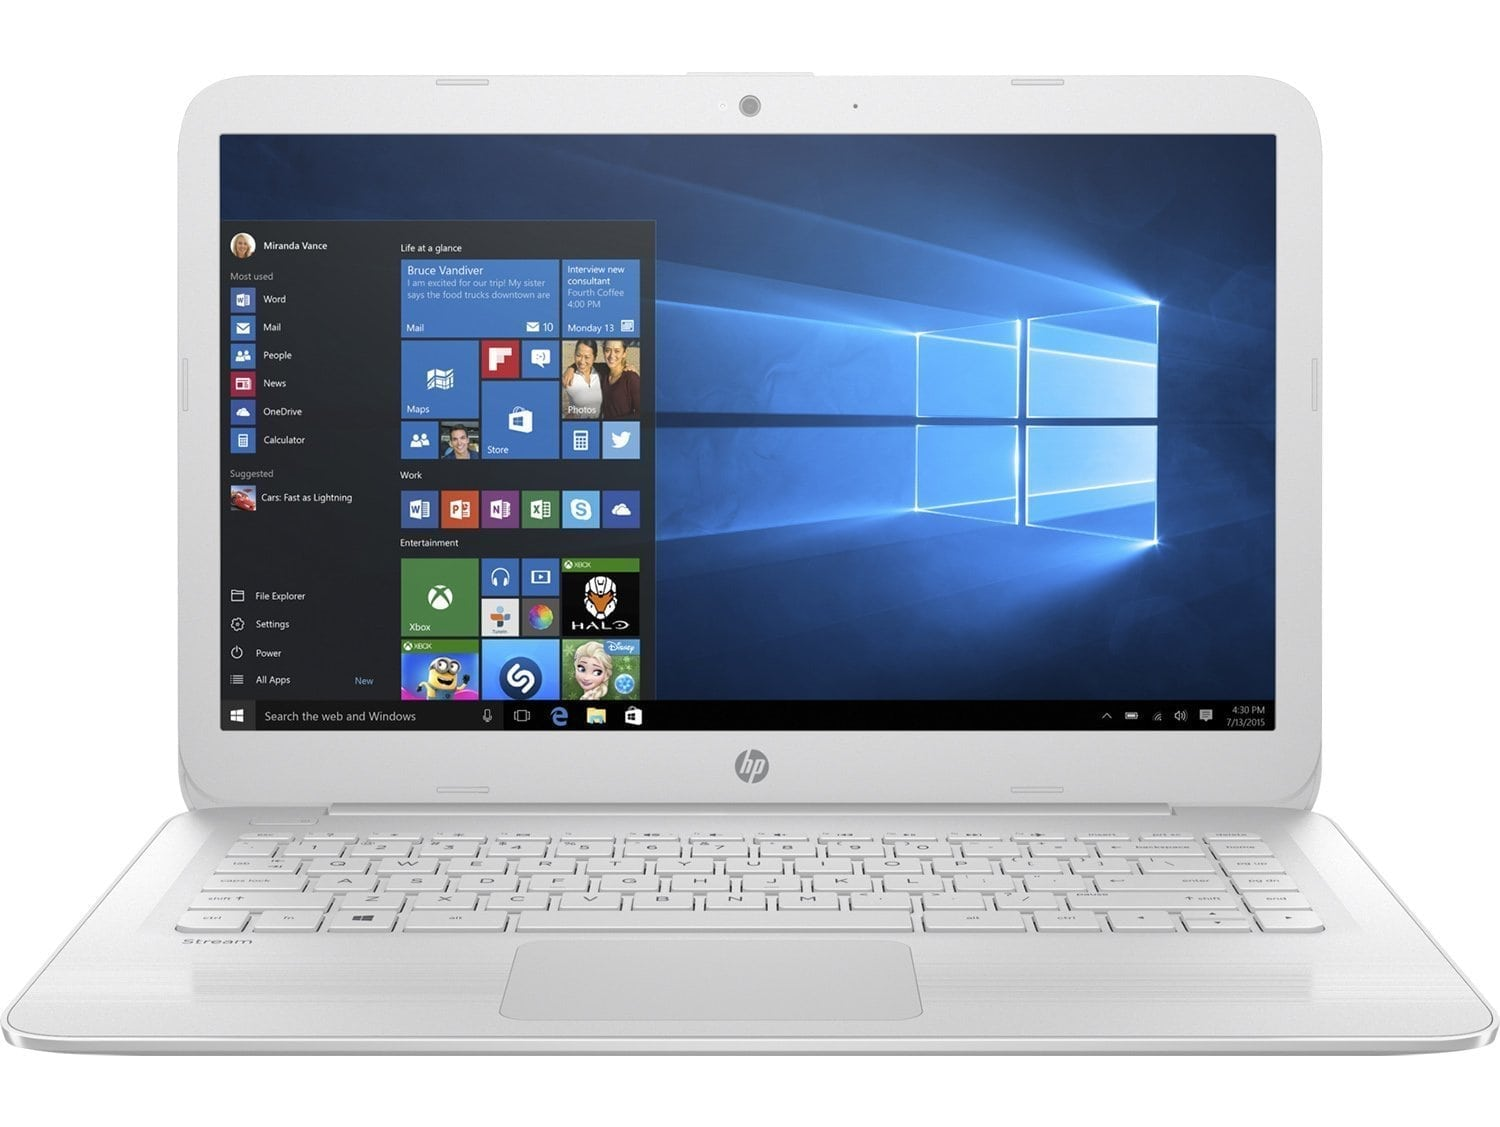 HP Stream 14-Inch review